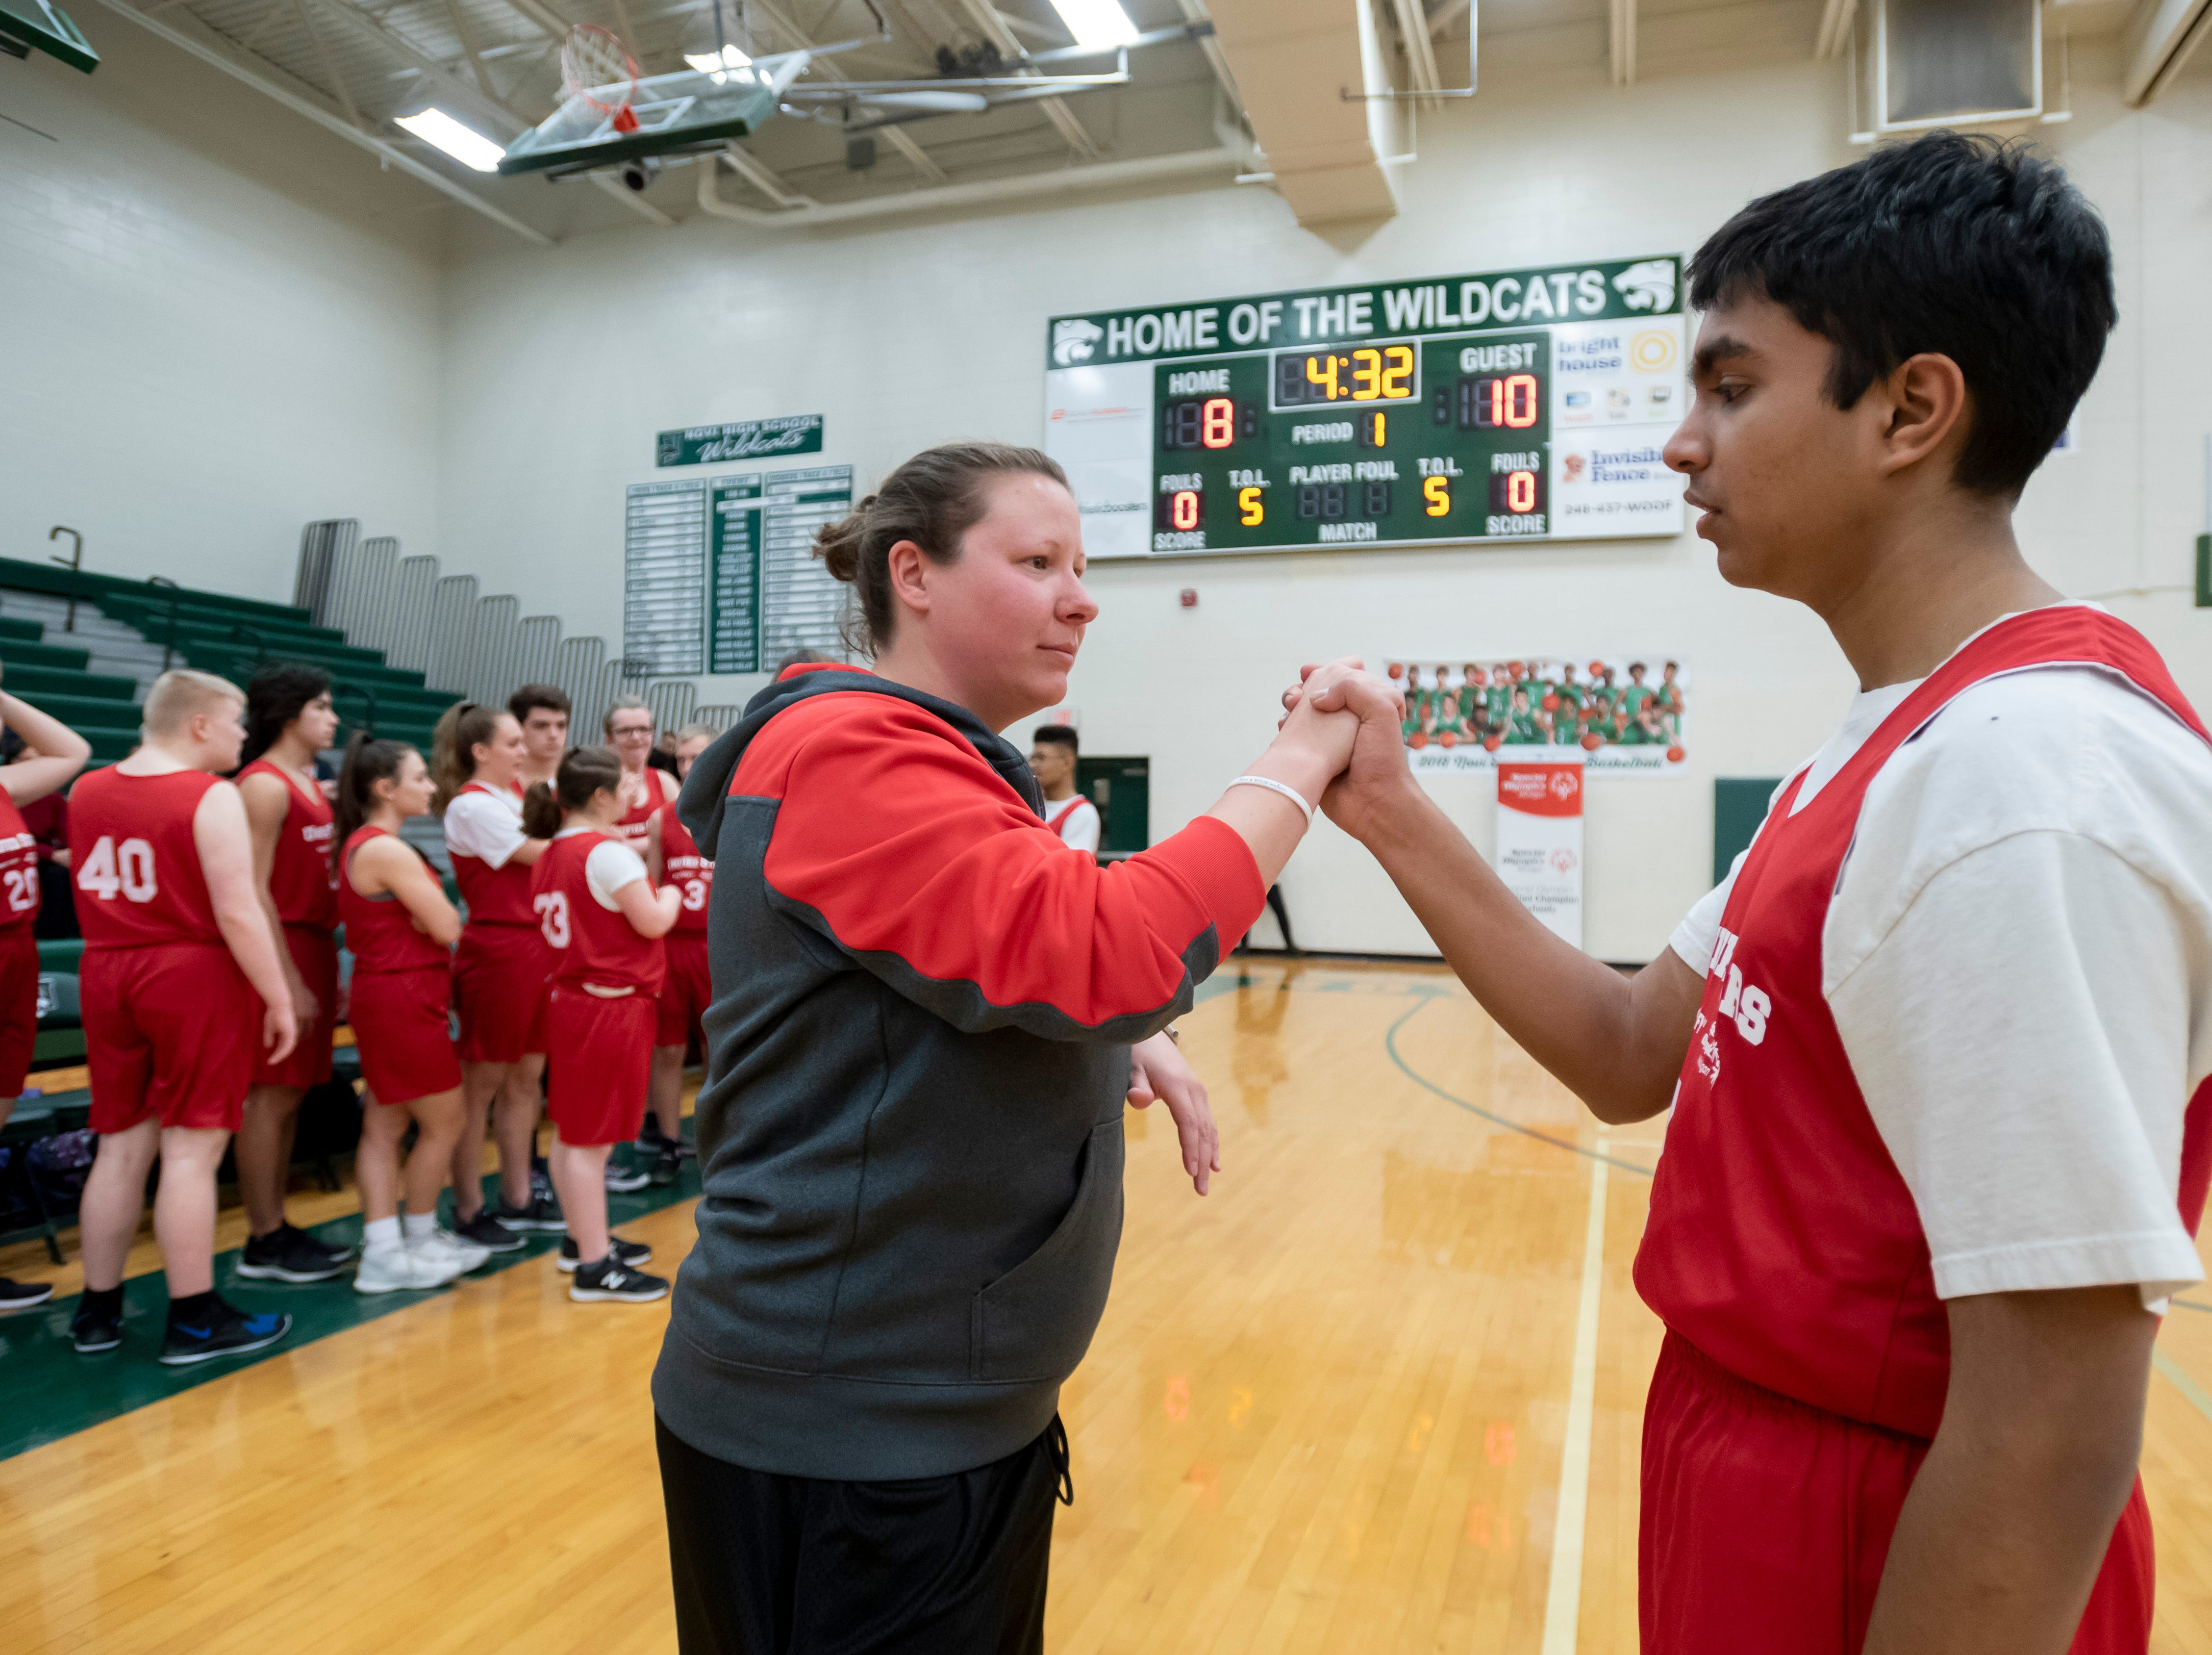 Plymouth-Canton coach Merrill DeRose gives words of encouragement to Chiraag Krishnan.